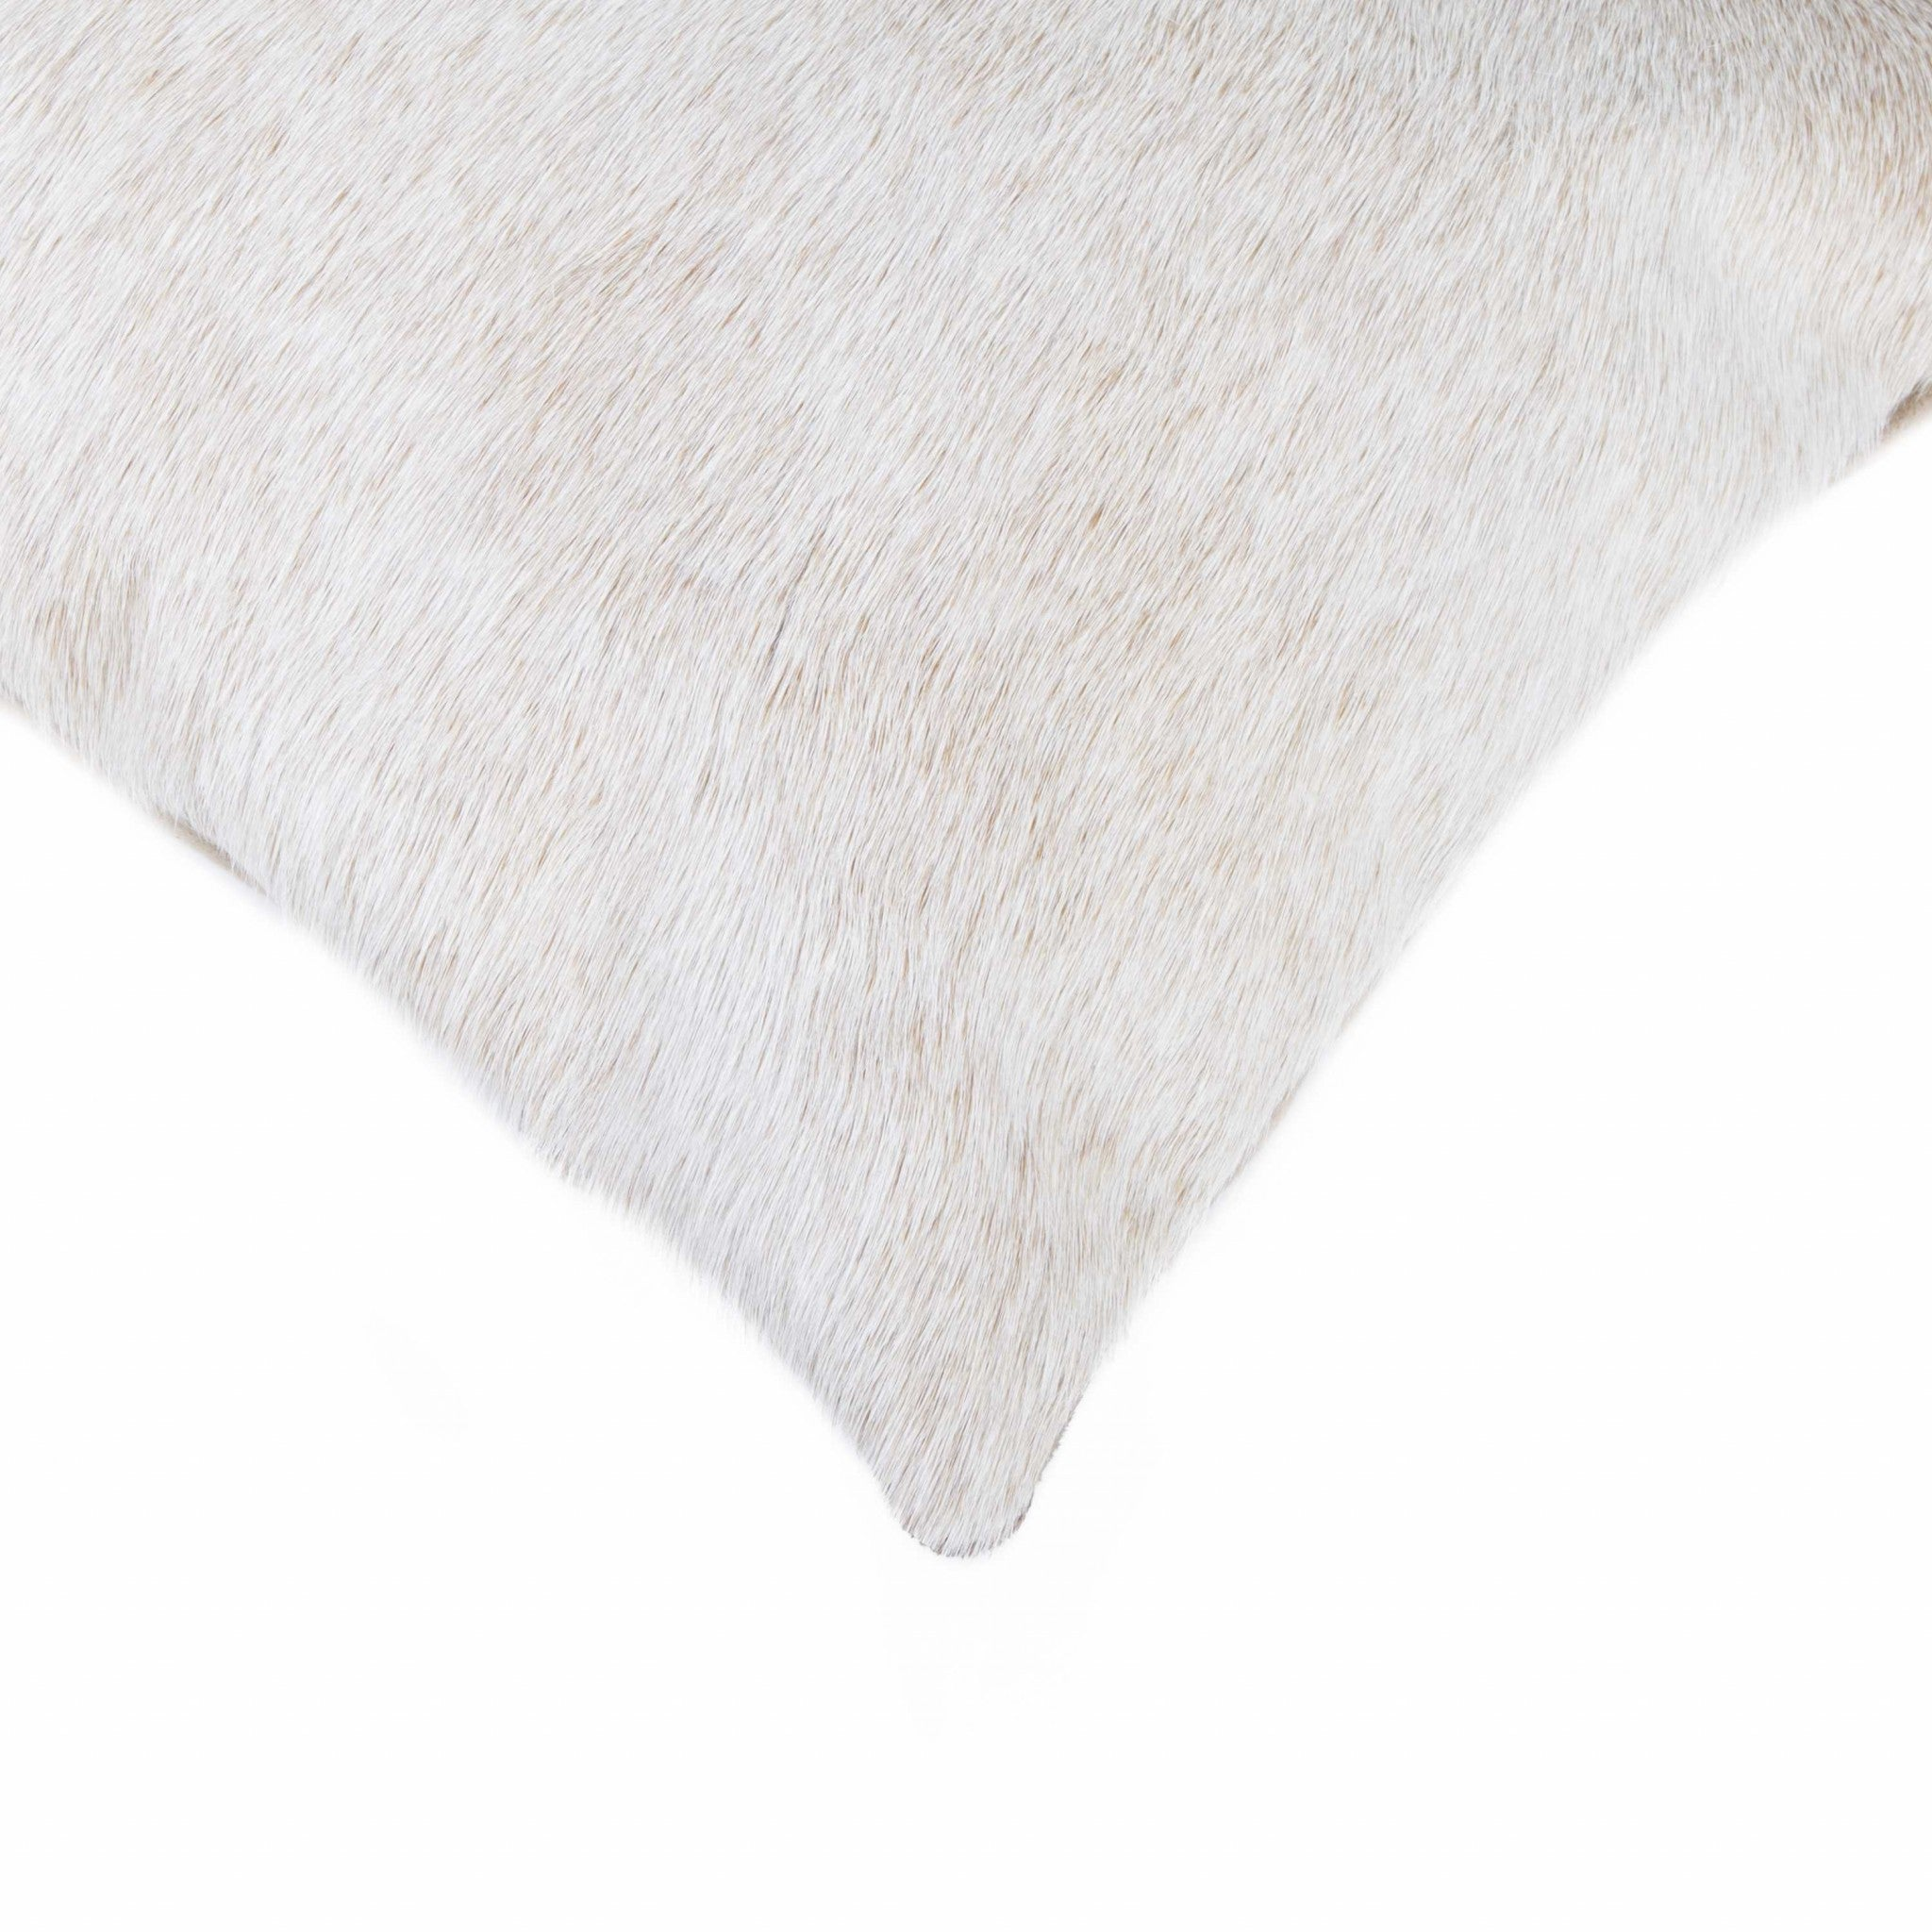 "12"" x 20"" x 5"" Natural Cowhide - Pillow"